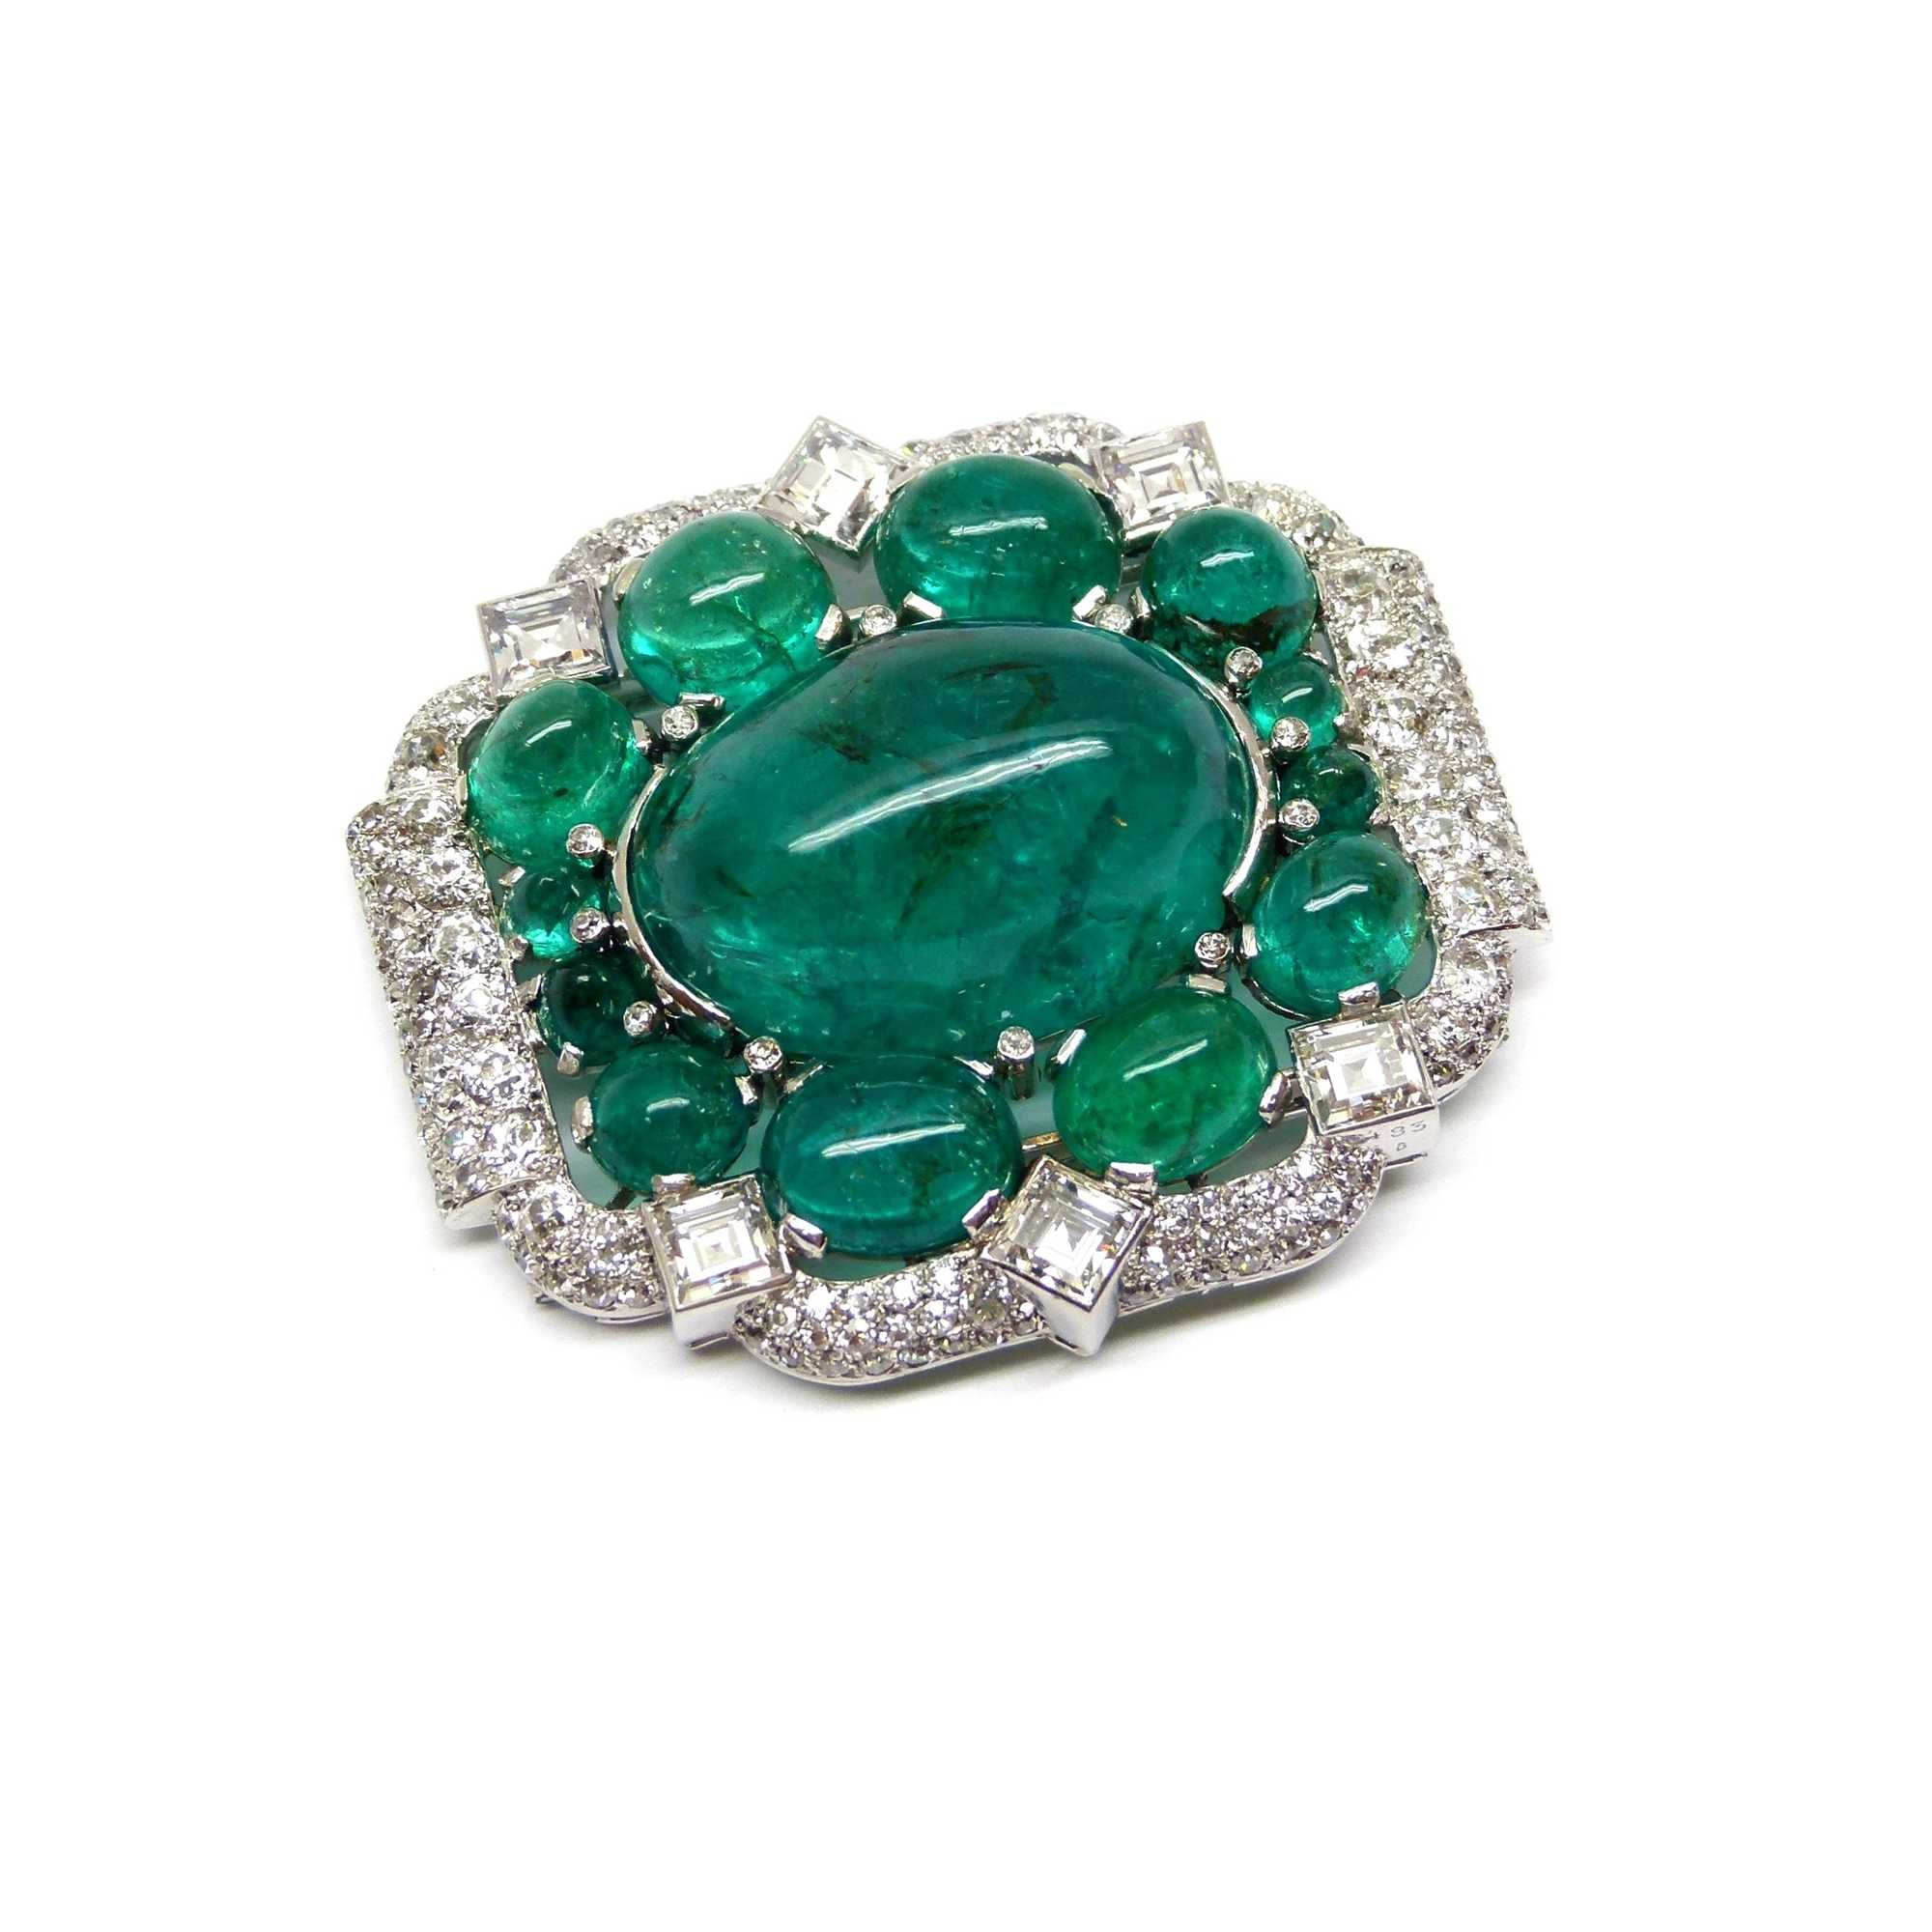 with cut shop cartier upscale diamonds crop emeraldcut emerald brilliant engagement shanks ring split product diamond false the set subsampling round scale ballerine